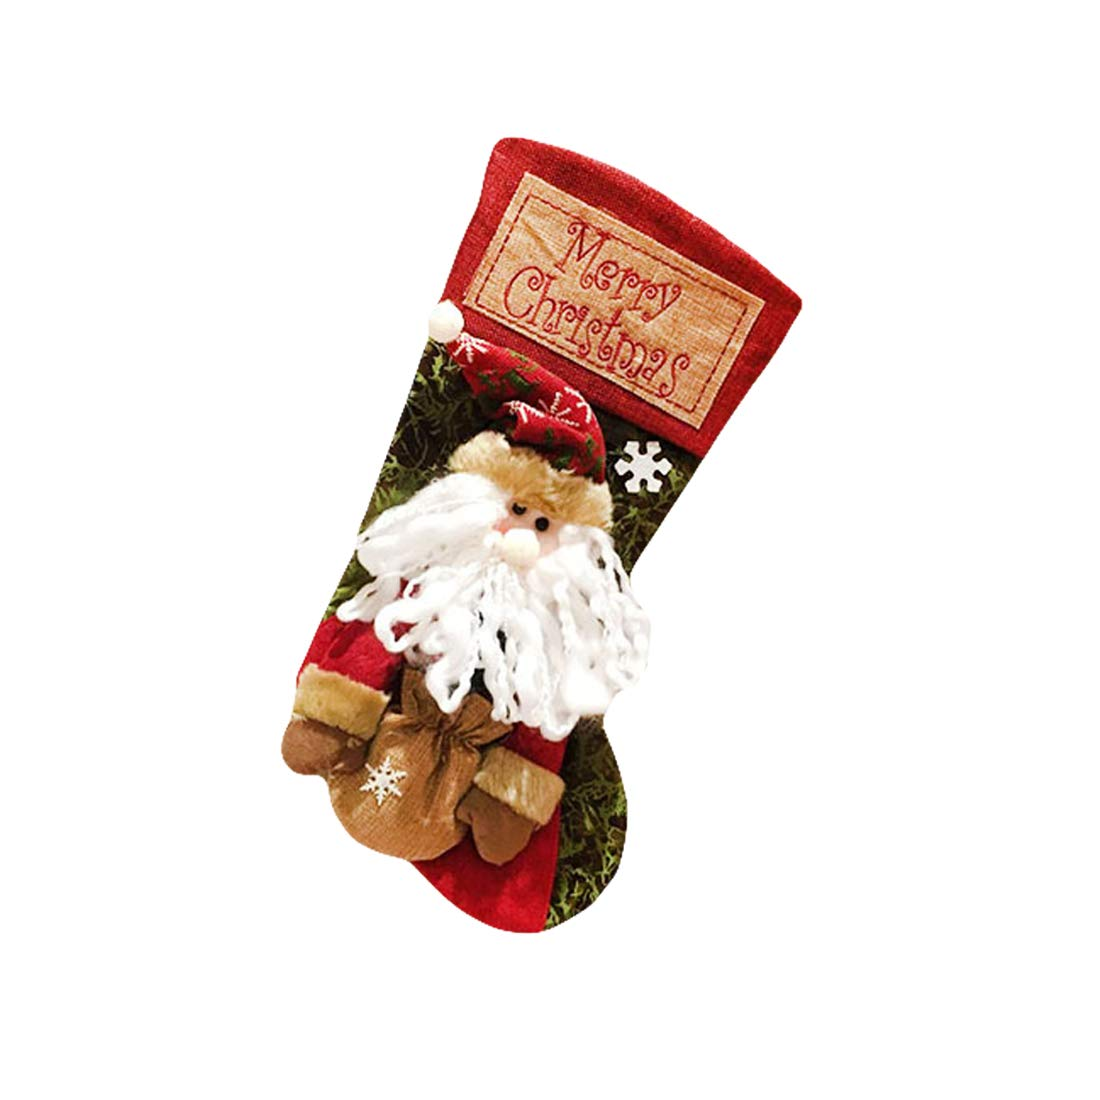 """CShopping 2018 New Christmas Stockings, 19"""" Larger Size Innovative Santa Claus Christmas Stockings Gift Bag for Kids Gifts, Christmas Eve Hanging, Tree Ornament, Home Décor"""